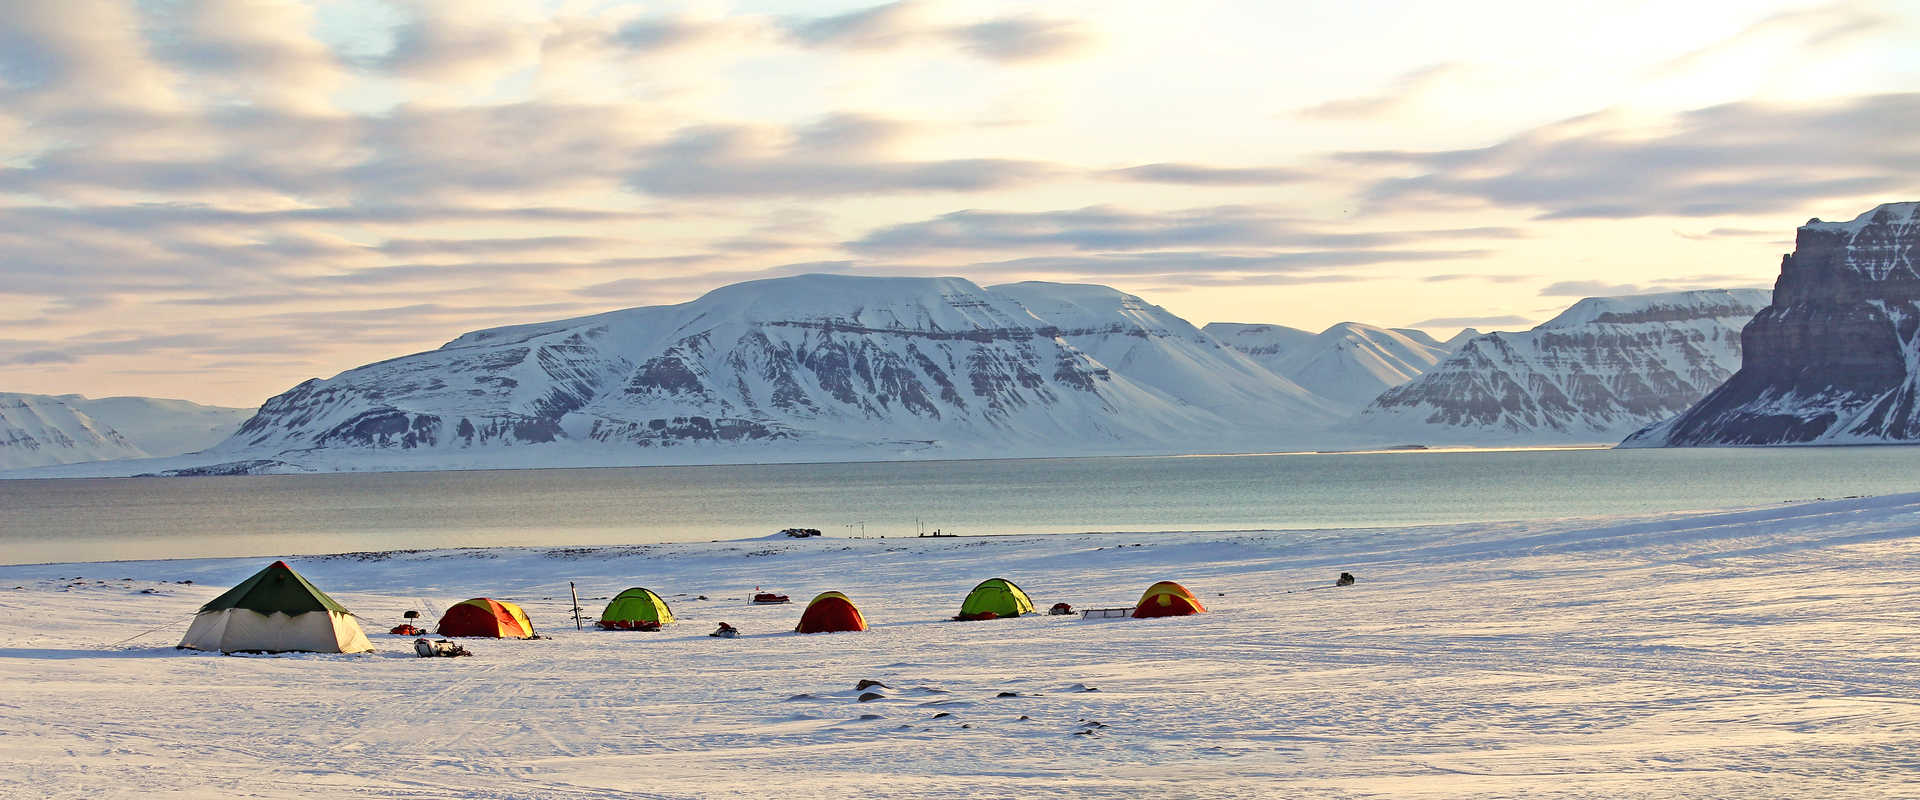 Base camp in Spitsbergen during Winter